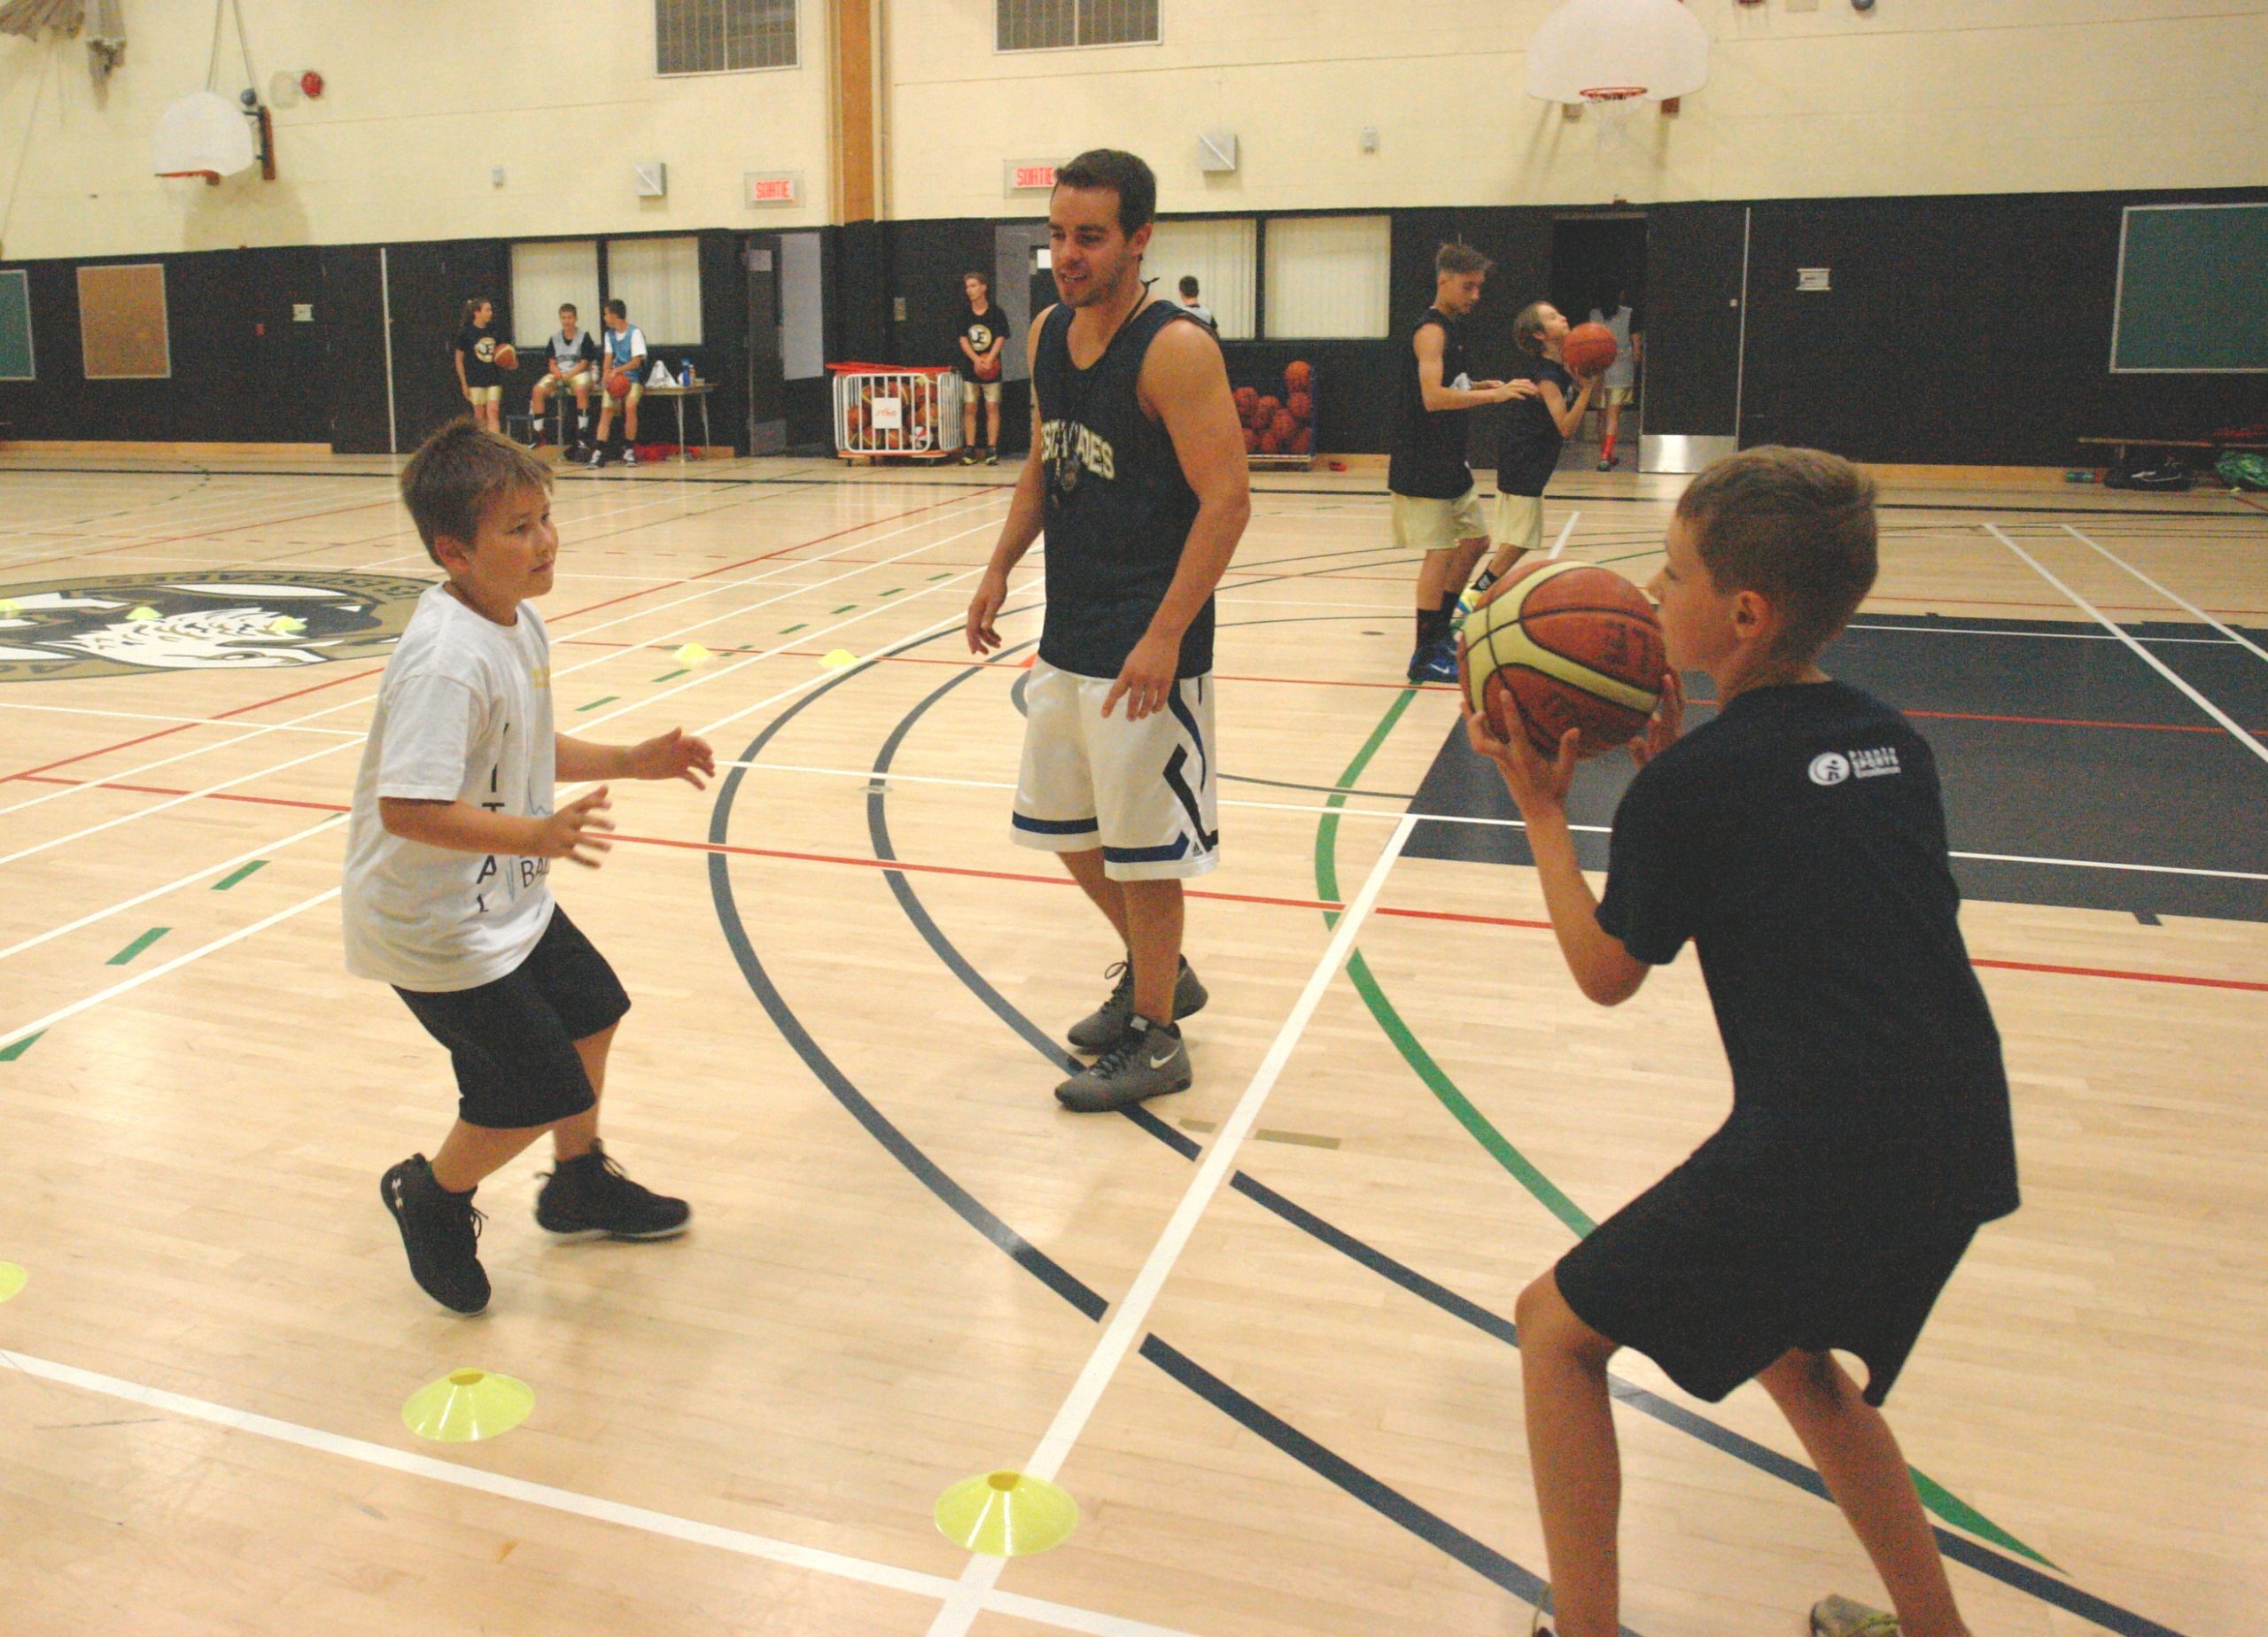 Camp basketball VITAL 2015 - 26